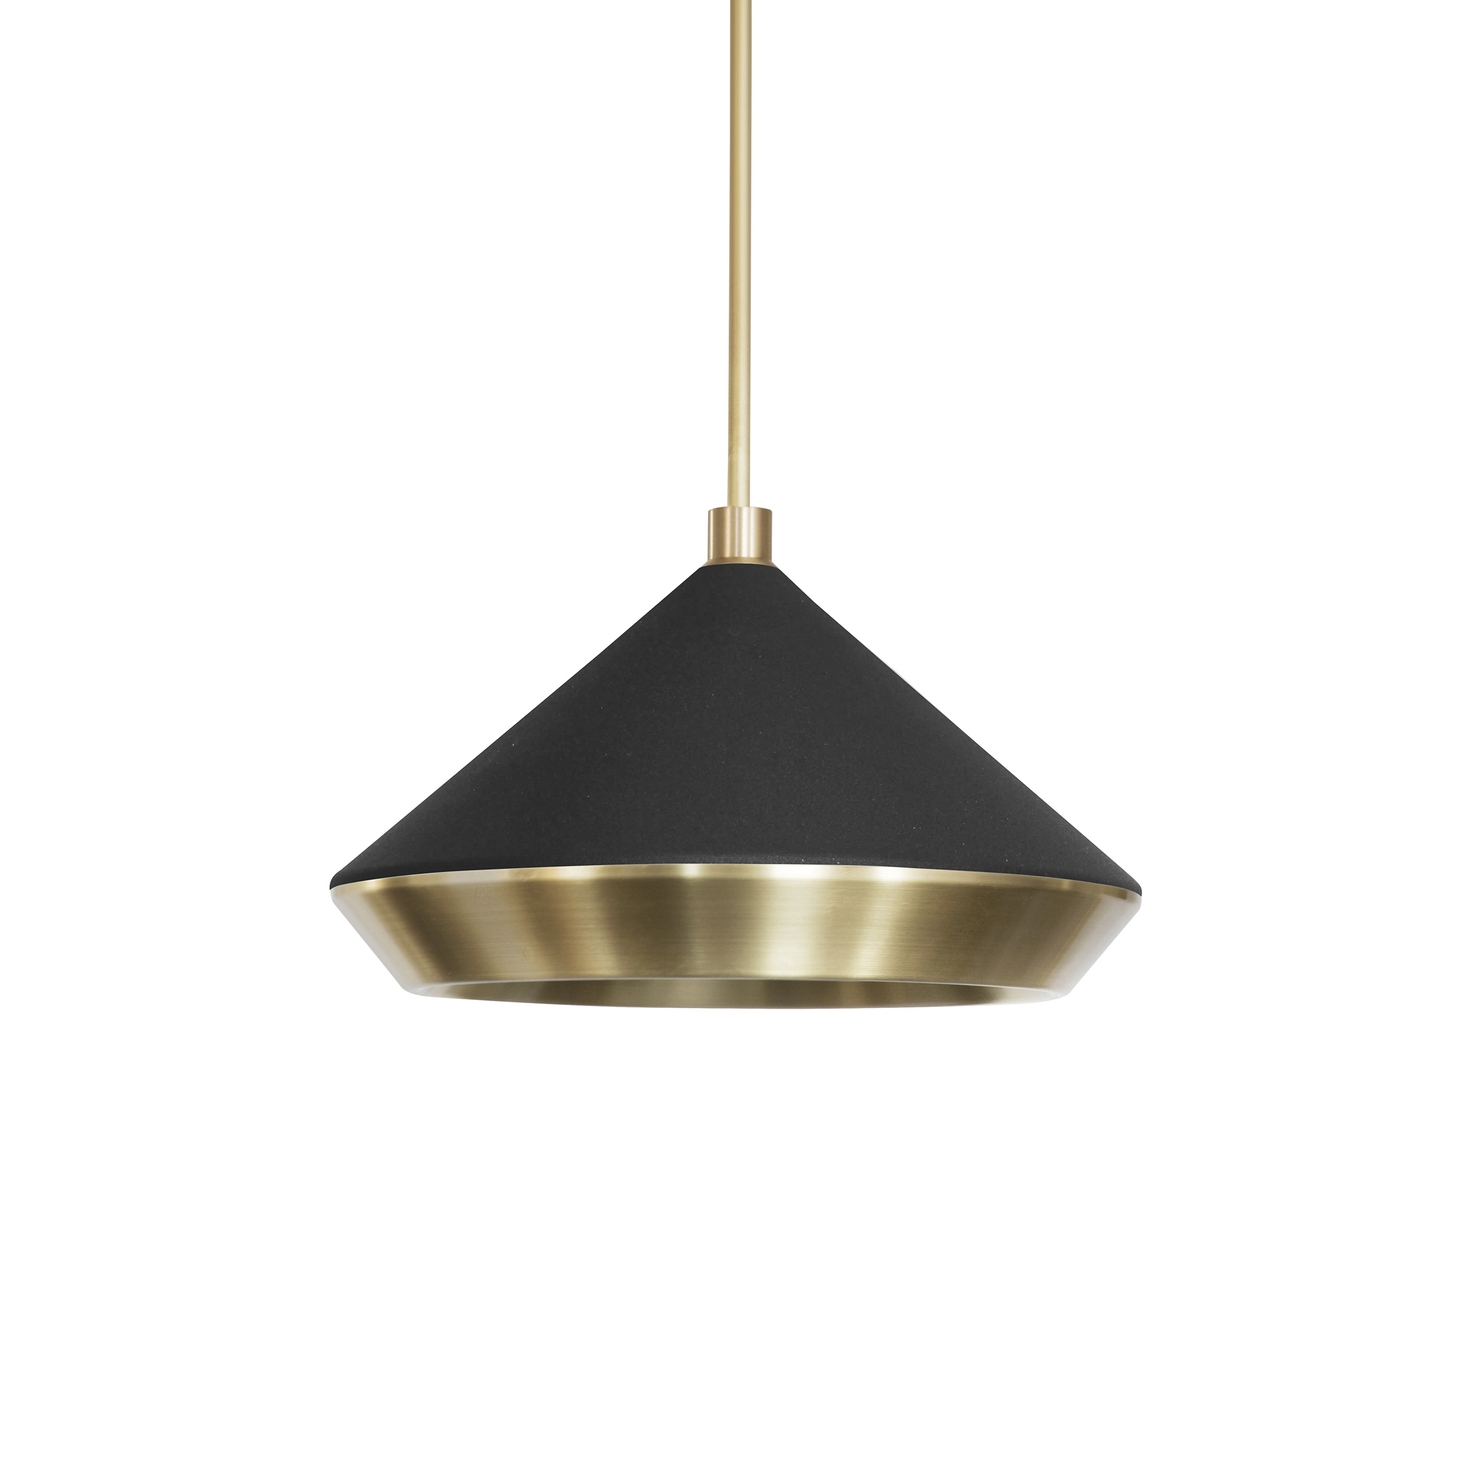 dixon pendant buy tom online etch utility uk light today brass shade design